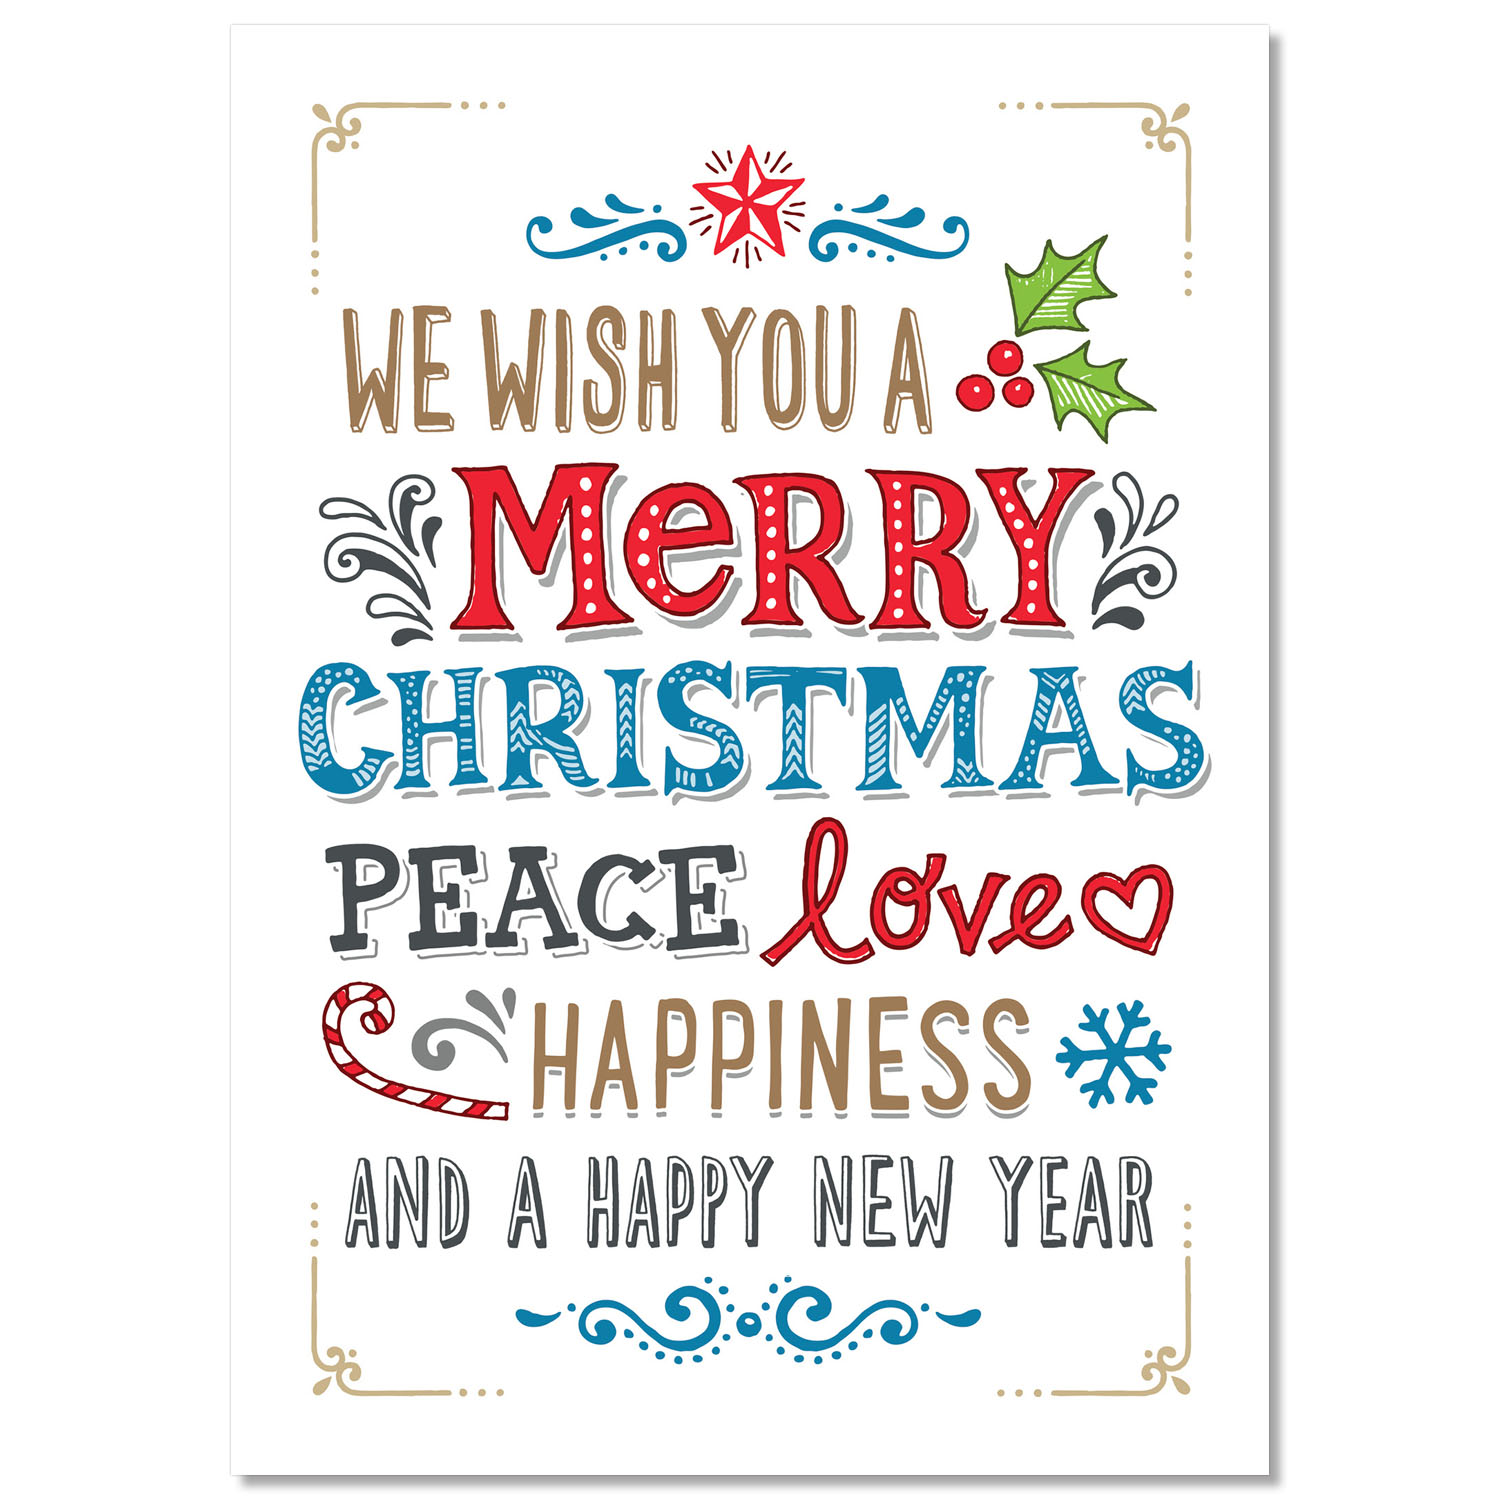 Peace Love Happiness Holiday Card